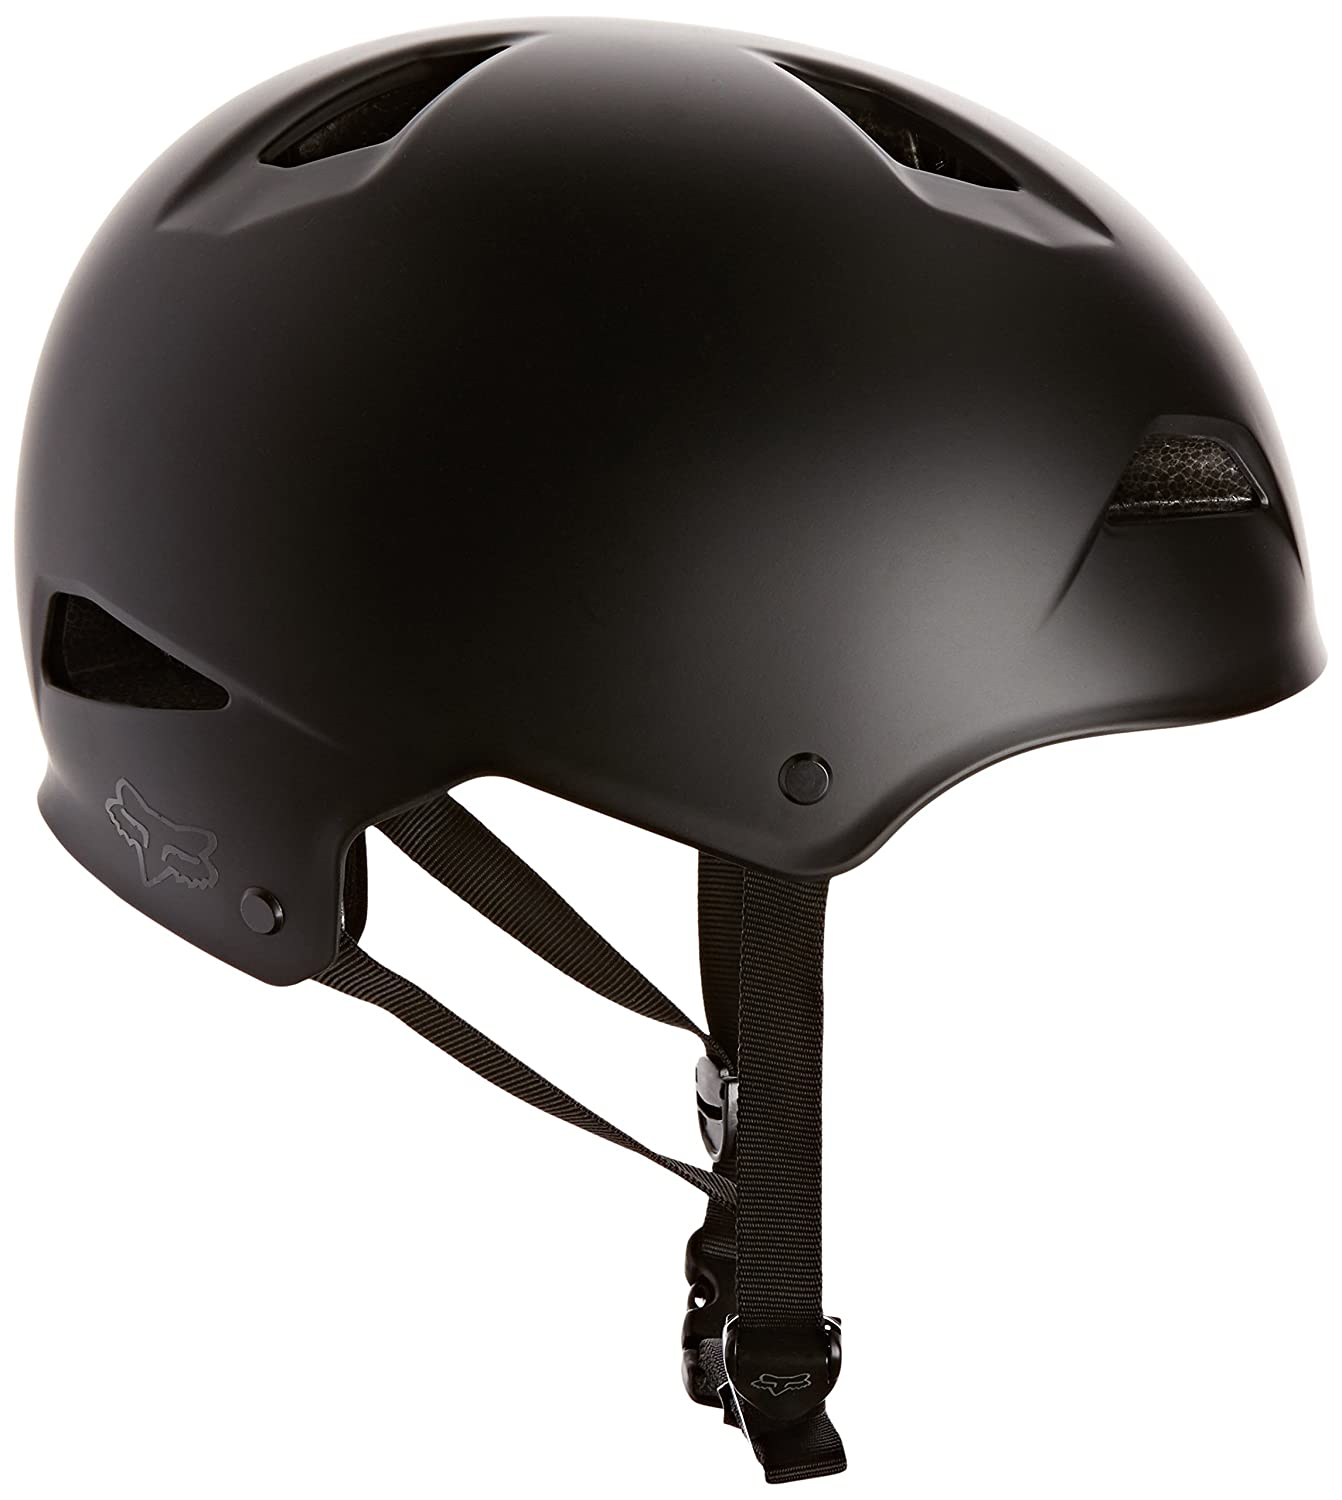 Fox Casque vÃlo Homme Flight Hardshell 16144